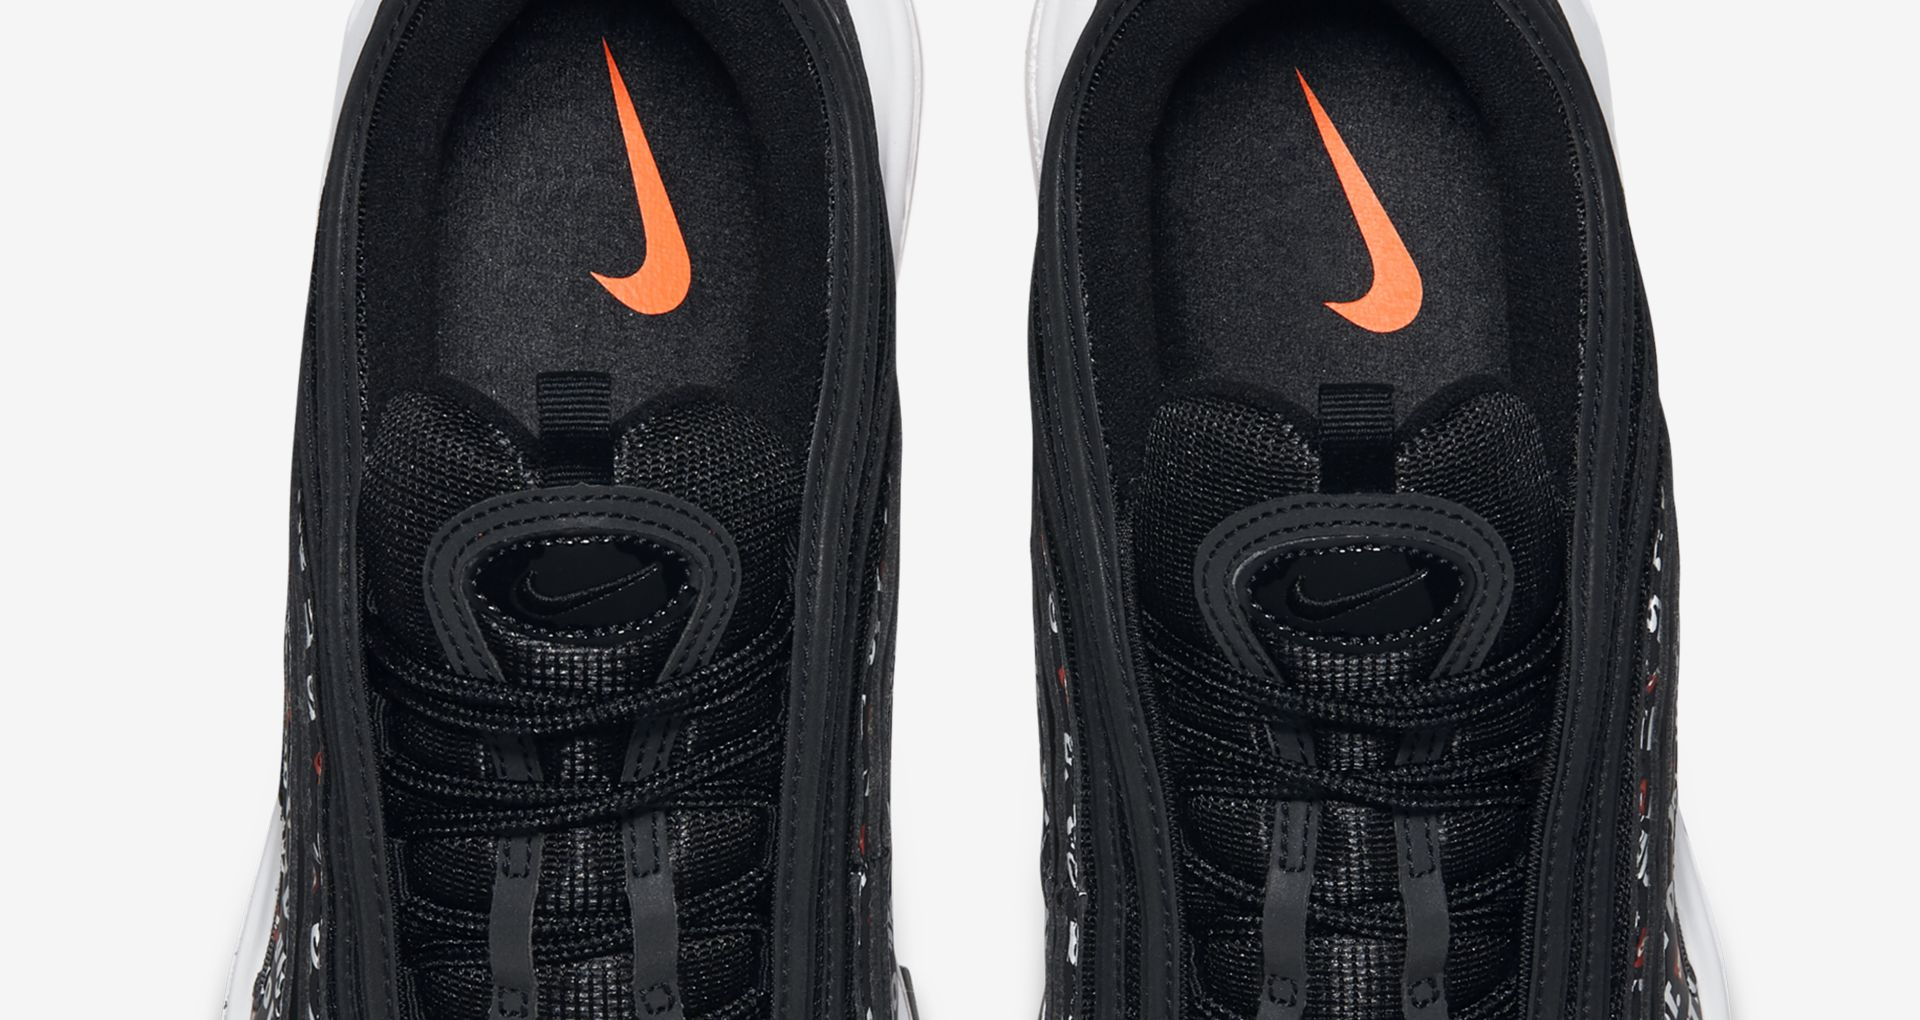 new product 8e3d0 2c5bd Nike Air Max 97 JDI Collection  Black   Total Orange   White  Release Date